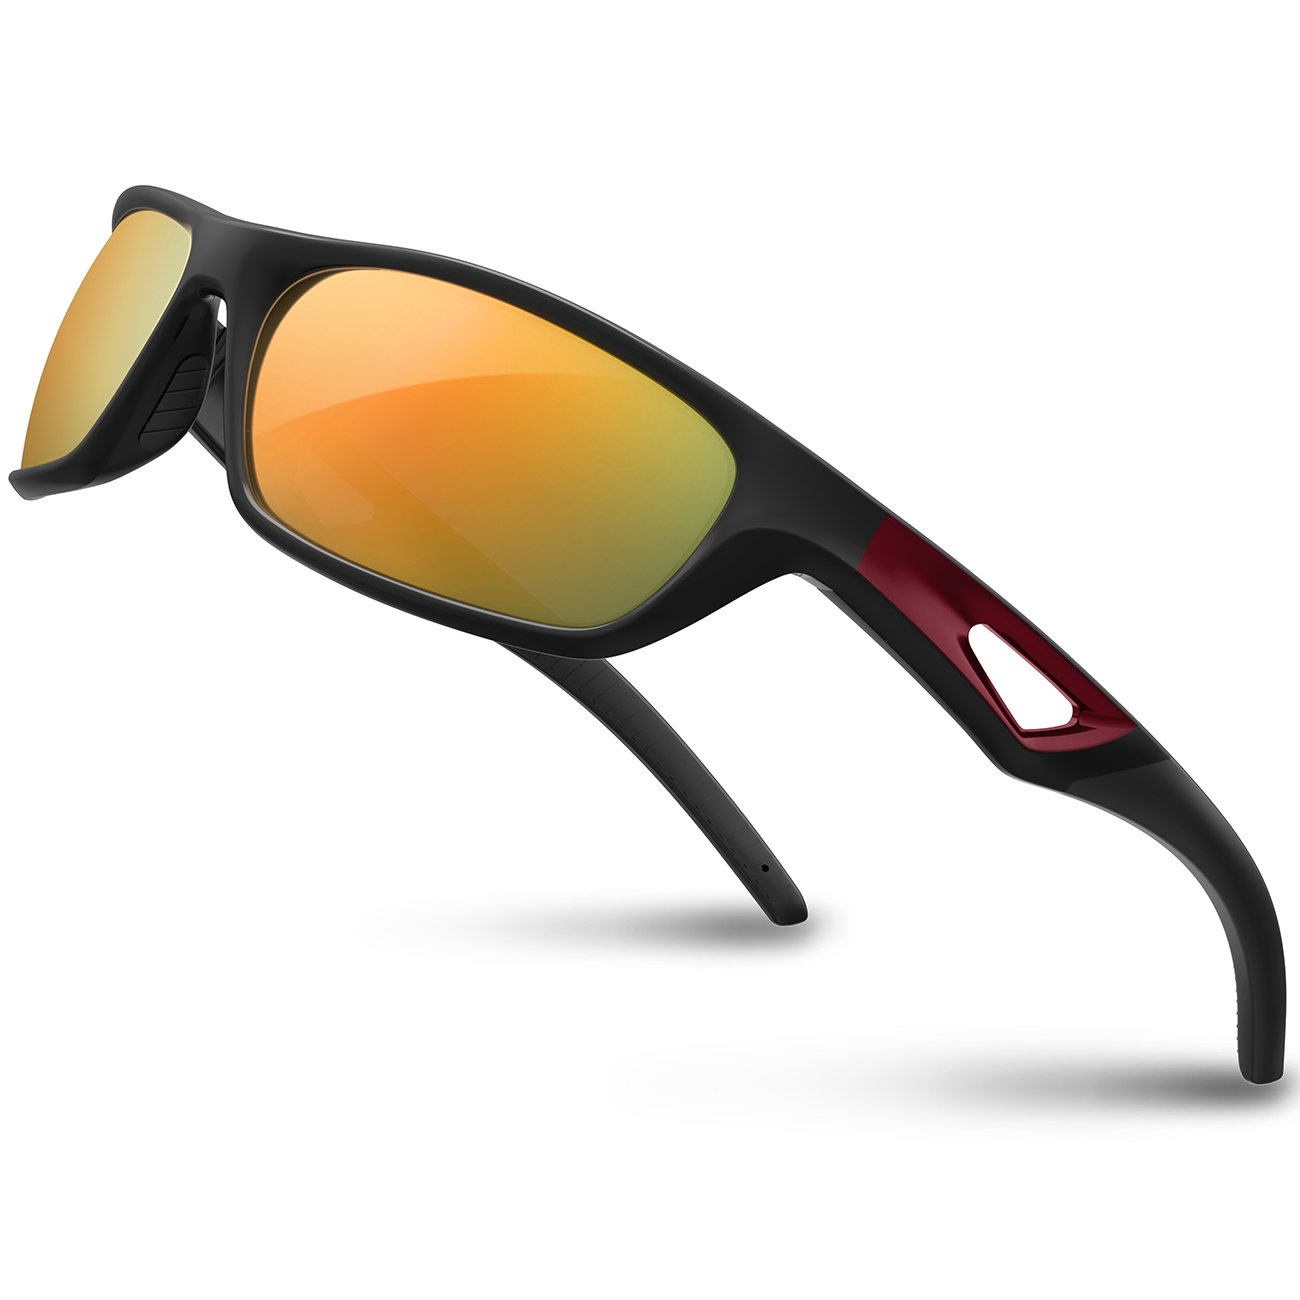 RIVBOS Polarized Sports Sunglasses Driving Sun Glasses Shades for Men Women Tr 90 Unbreakable Frame for Cycling Baseball Run Rb831 (Black&Red Mirror Lens)